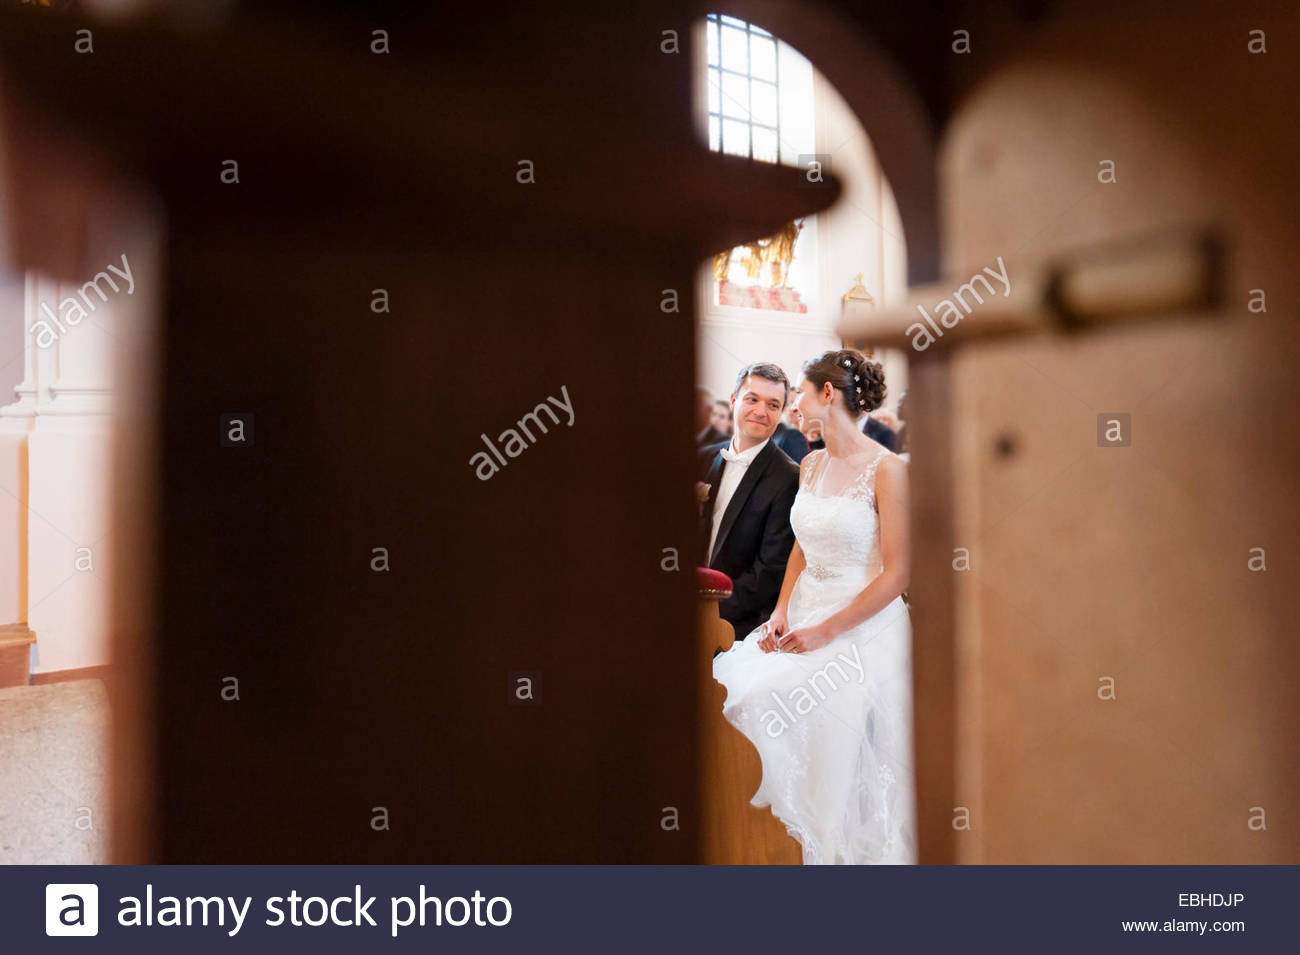 Bride and bridegroom sitting on church pew - Stock Image